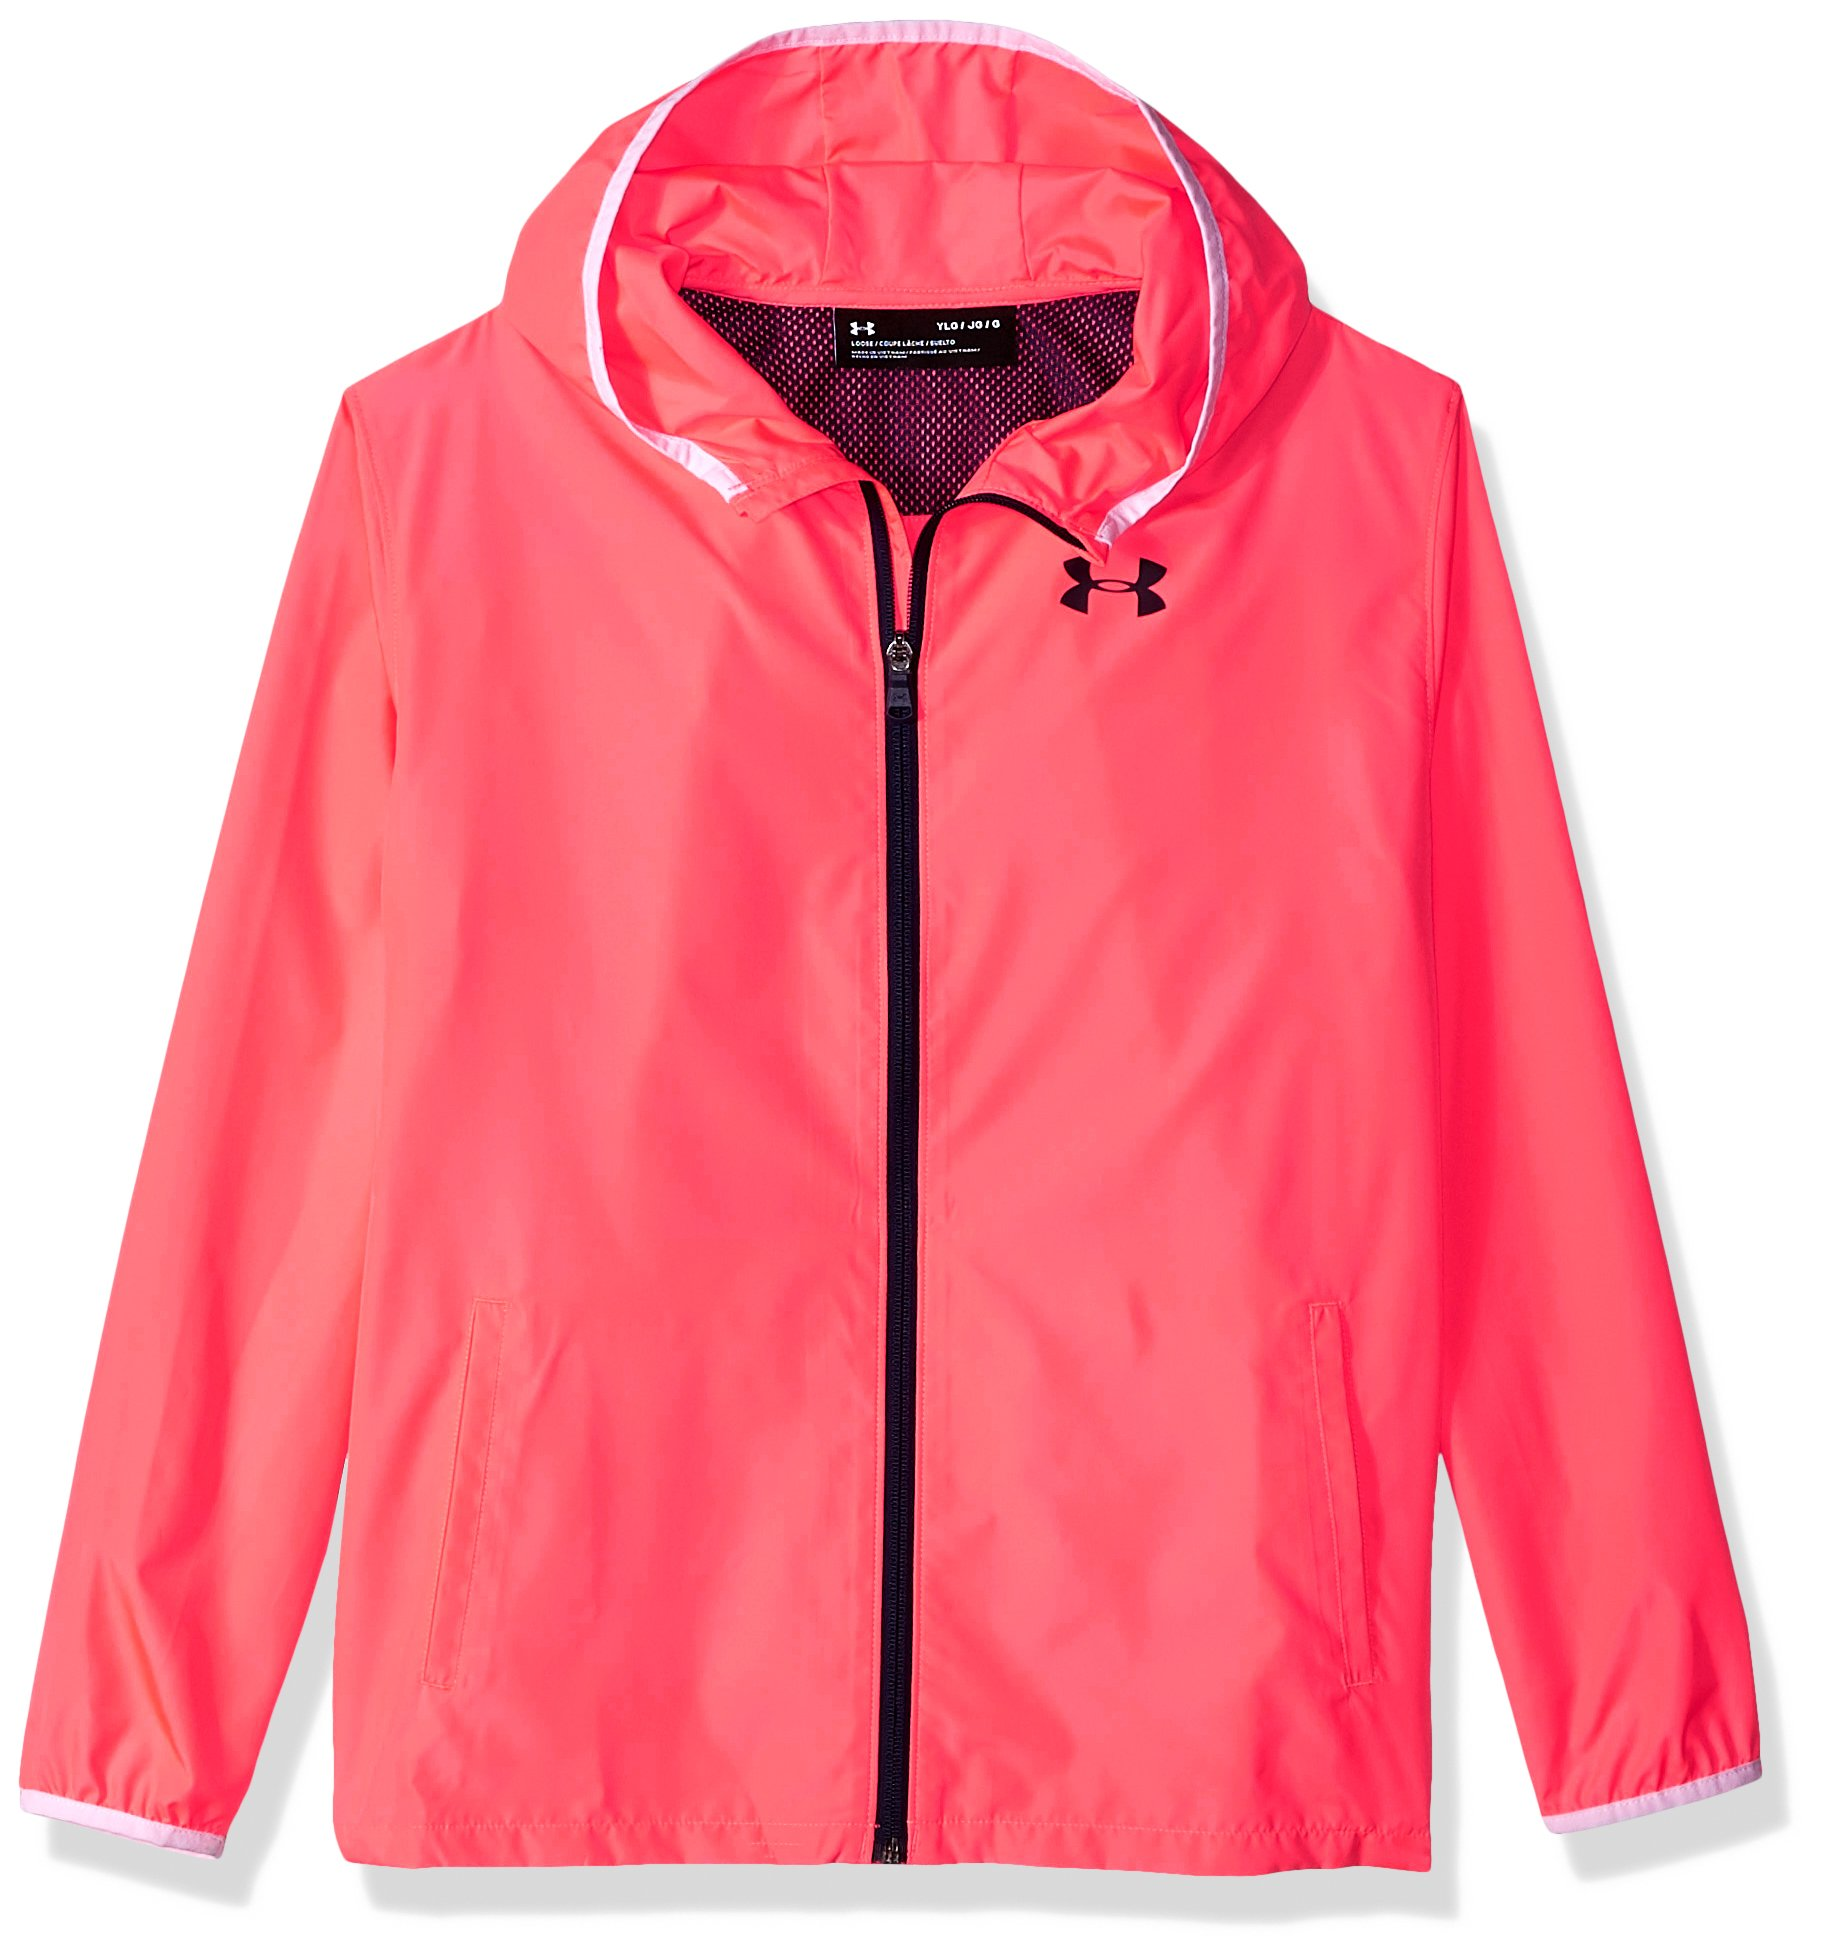 Under Armour Girls Sack Pack Full Zip Jacket, Brilliance (819)/Academy, Youth Small by Under Armour